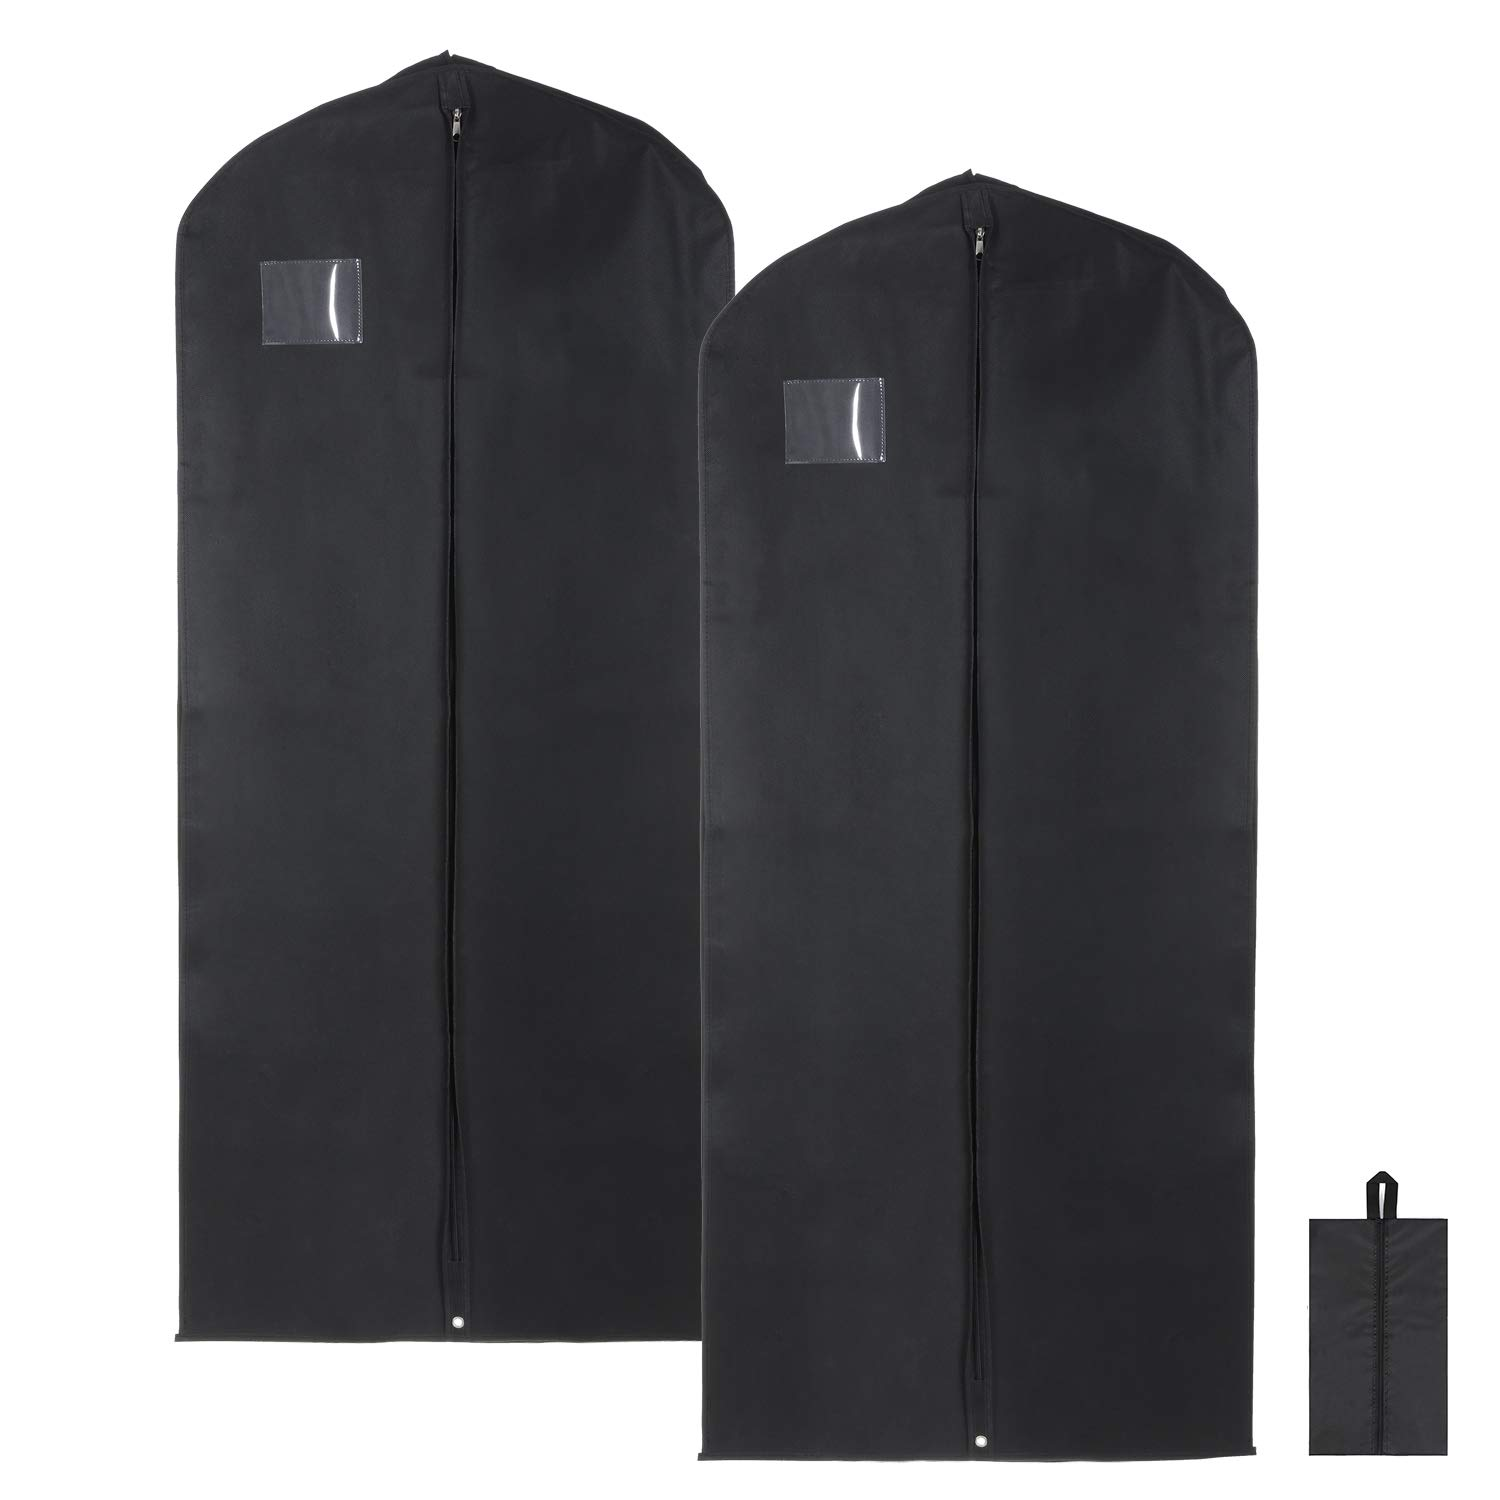 """Magicfly 42"""" Garment Bags with Transparent Zipper Pockets for Suits, Dance, Dress Dust Cover Travel Storage with Free Shoe Bag, Black, Pack of 2 MF437-Magicfly"""